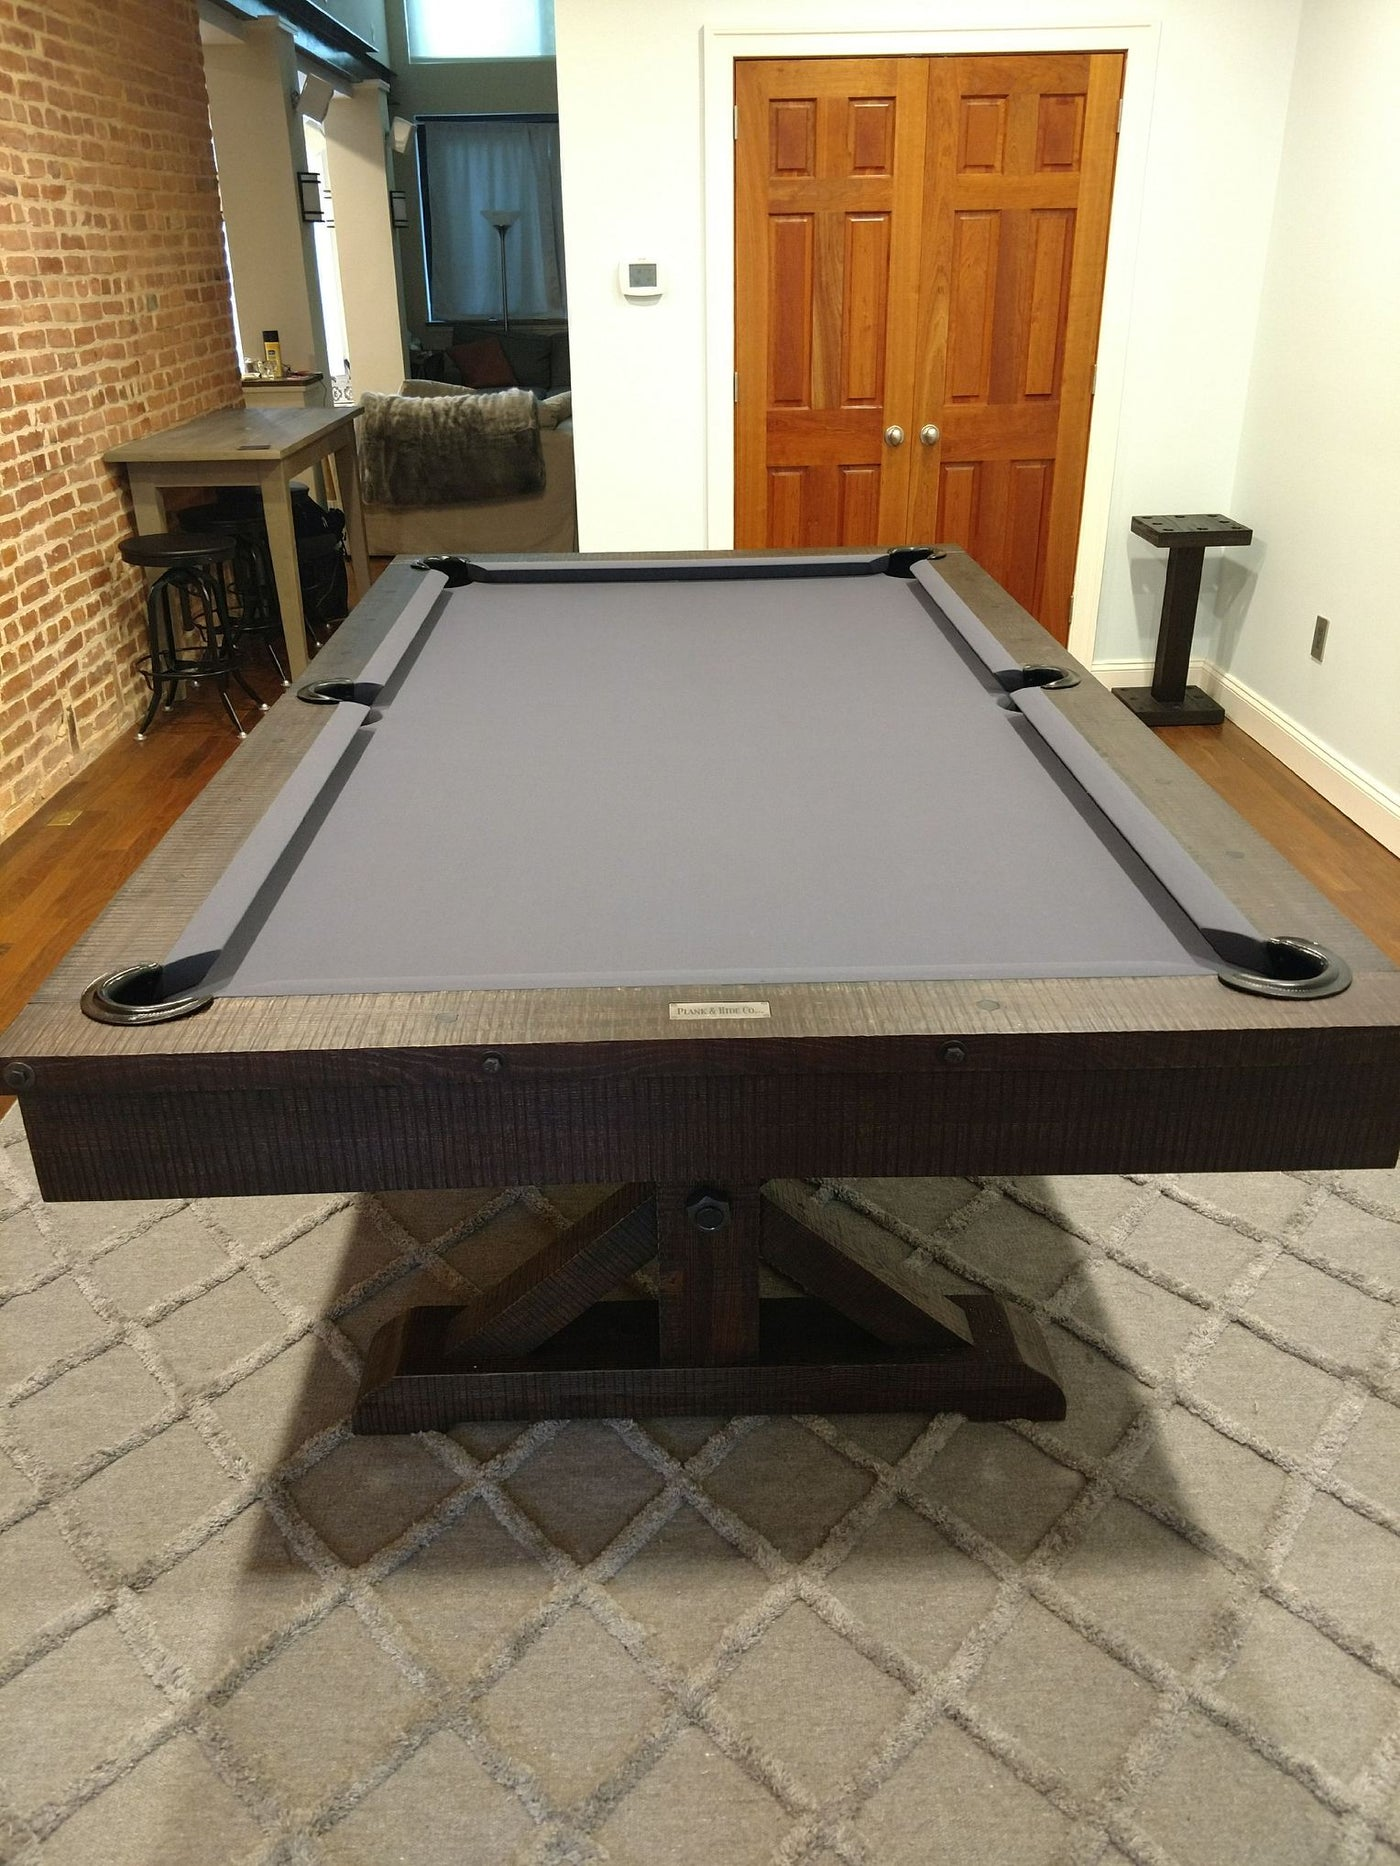 ... Plank And Hide Otis Basement Game Room On Rug; Plank And Hide Otis Pool  Table ...